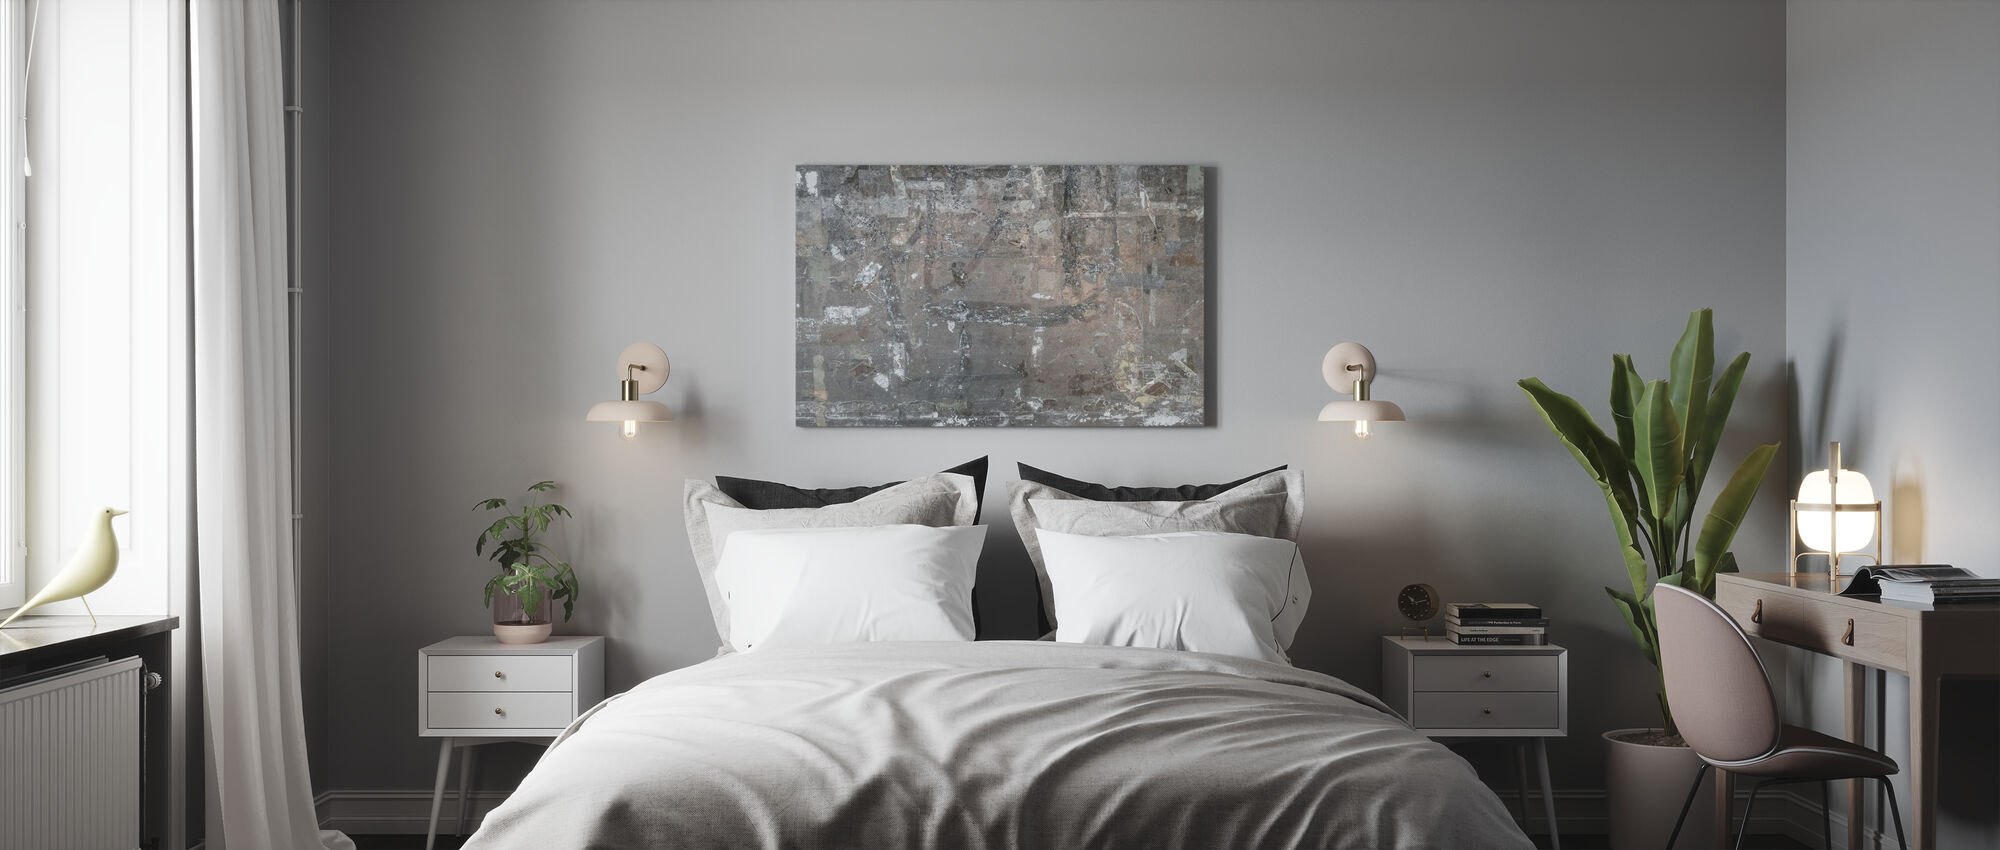 Ripped Poster Wall - Canvas print - Bedroom